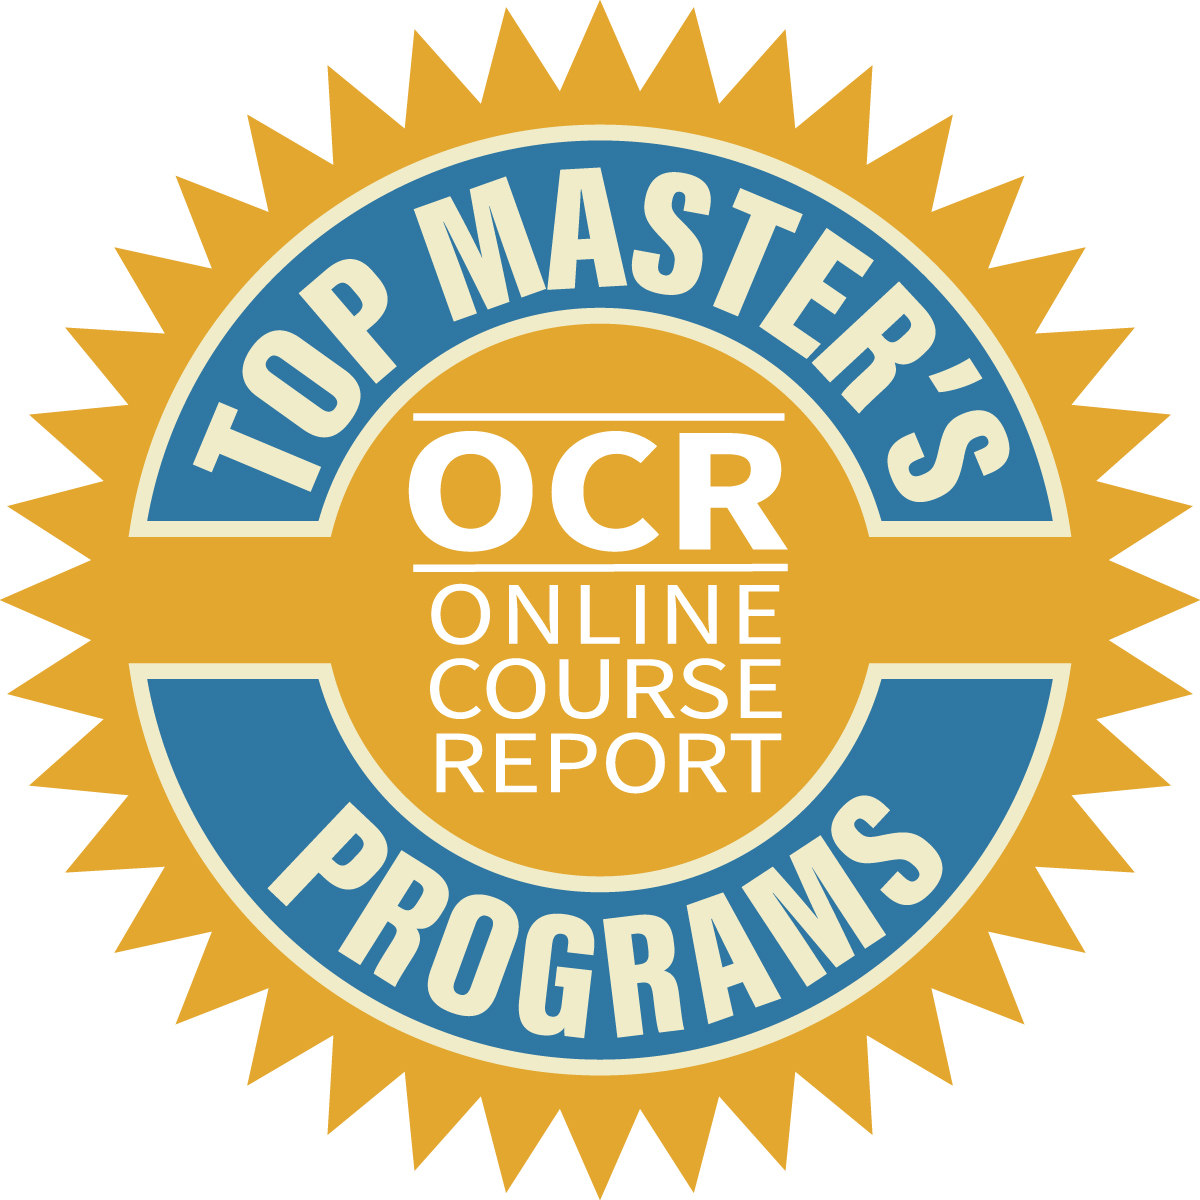 Msw Online Programs >> The 10 Best Online Master S In Social Work Msw Degree Programs 2019